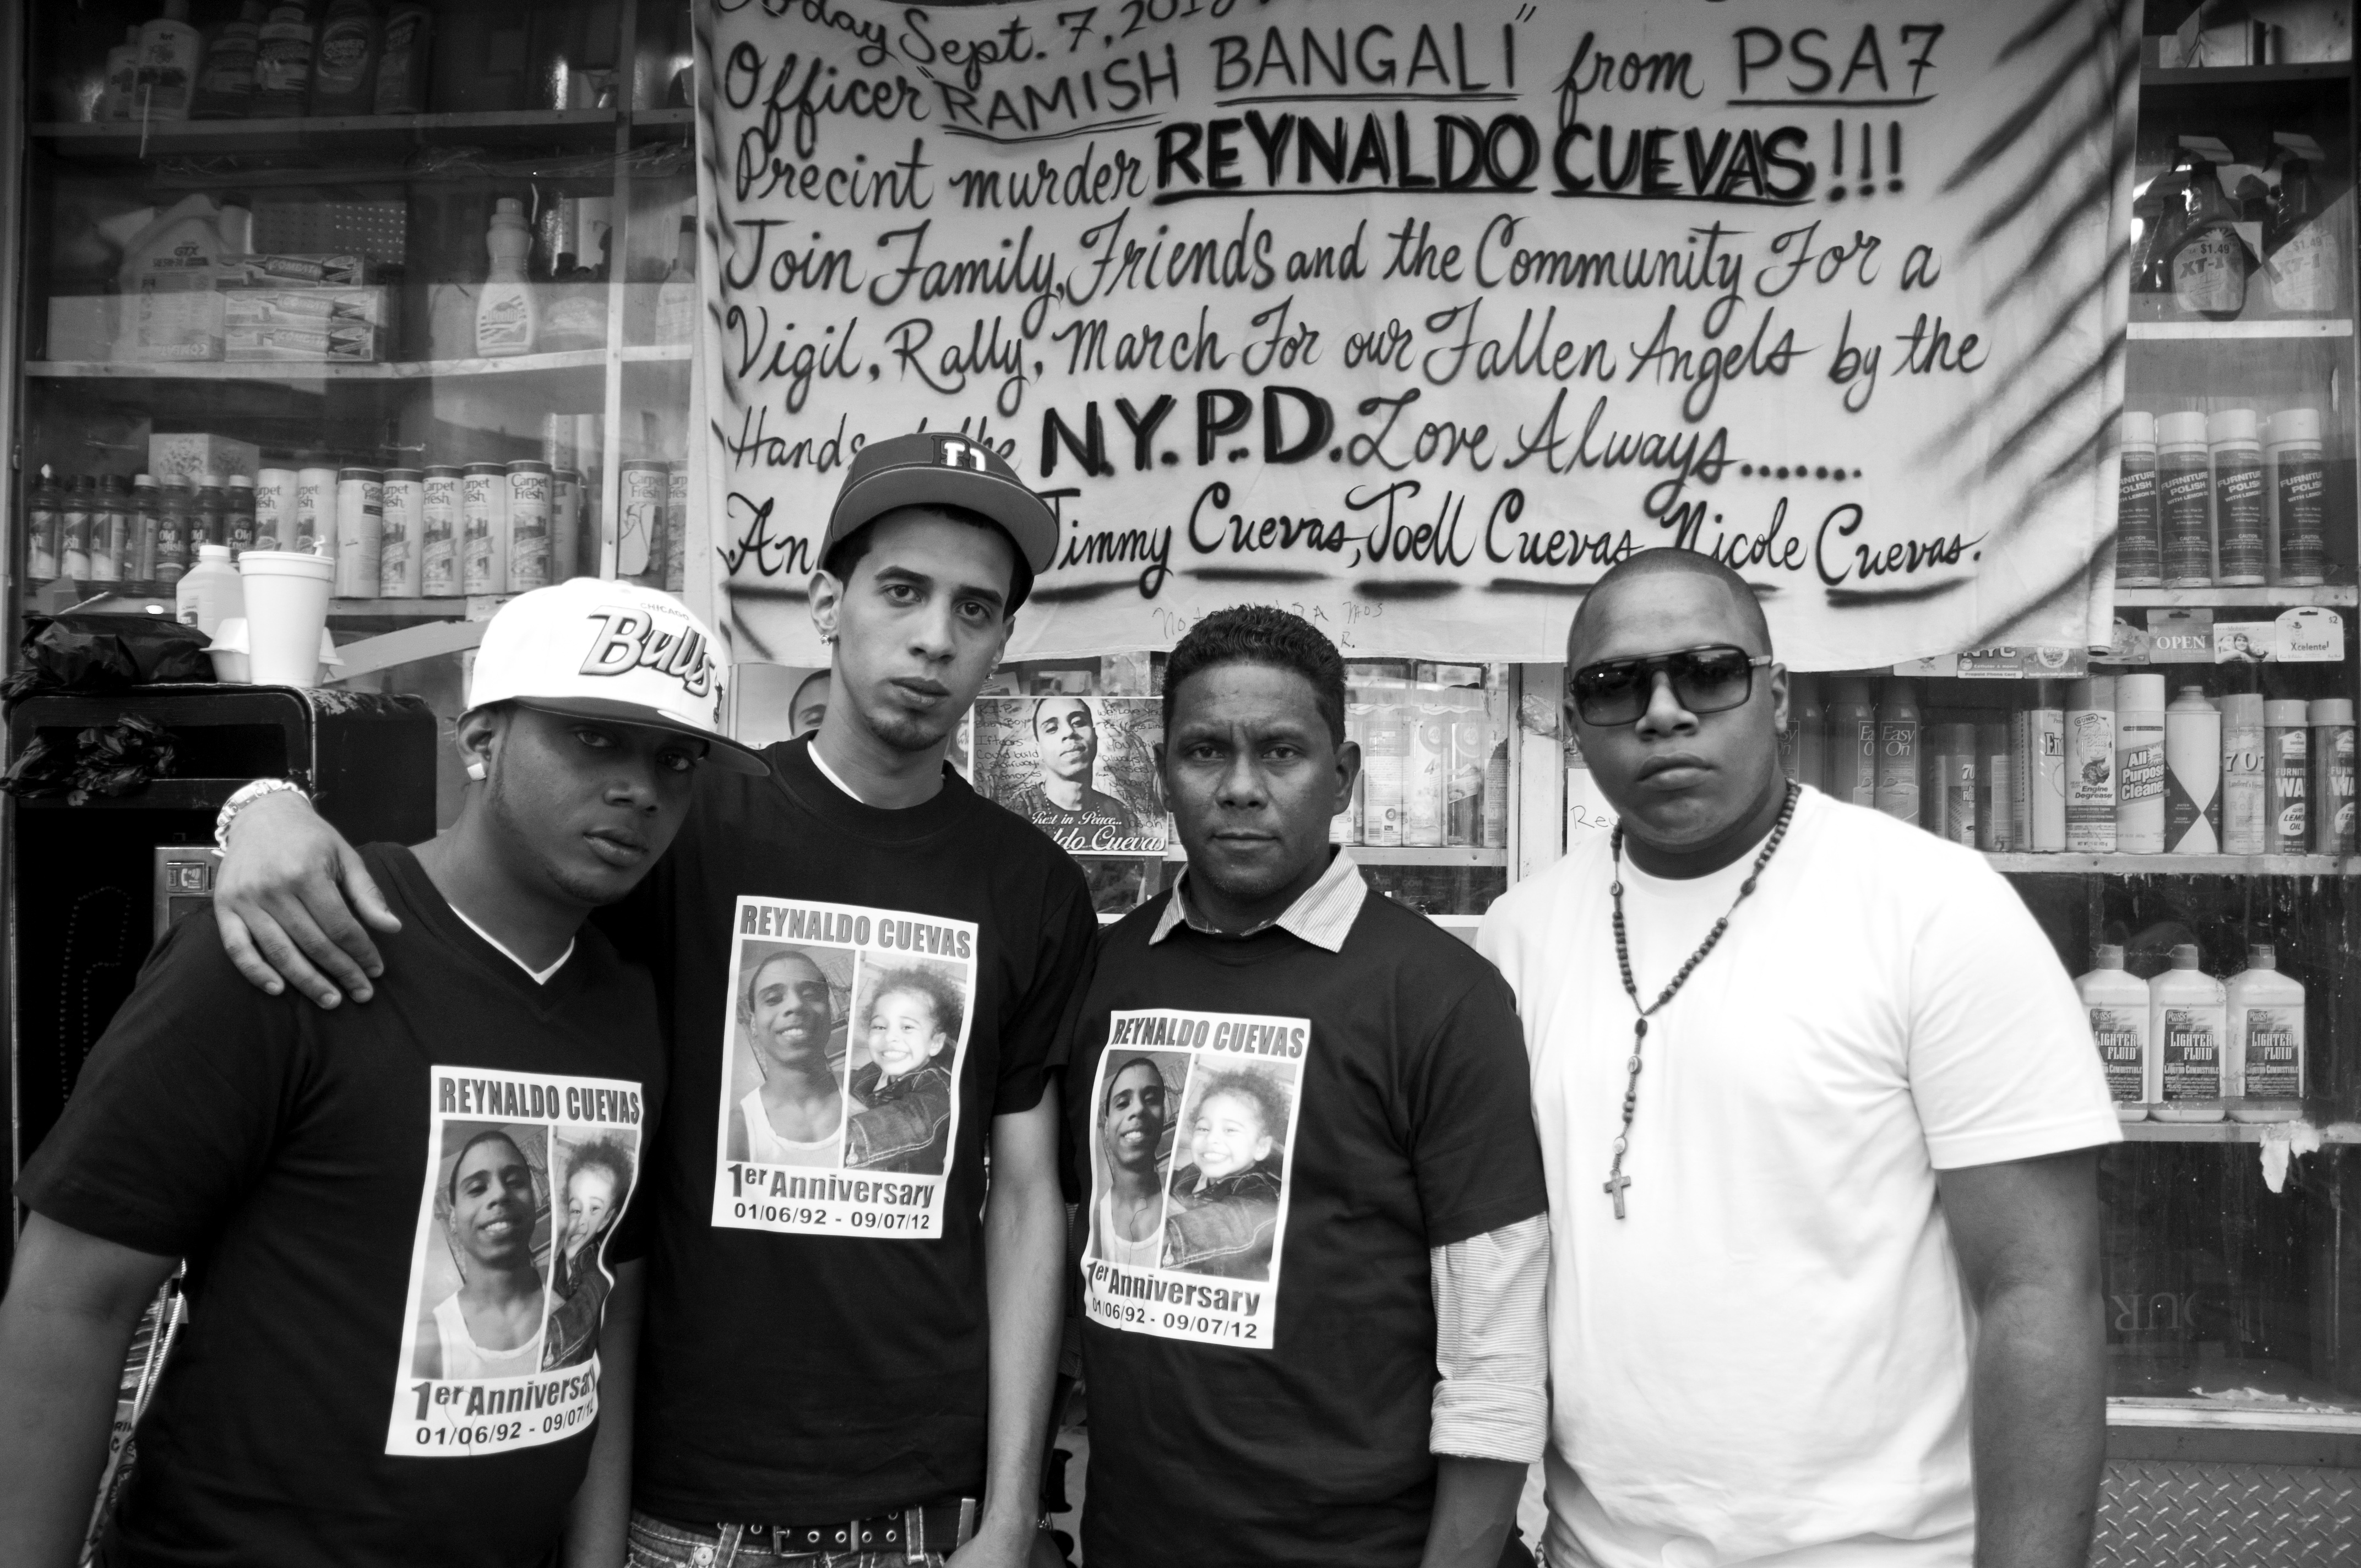 STOLEN LIVES & RESURRECTION : REYNALDO CUEVAS HAS FAMILY OF FRIENDS THAT RESURRECTS HIM THROUGH STANDING EACH OTHER SEPTEMBER 7, 2012 - PRESENT